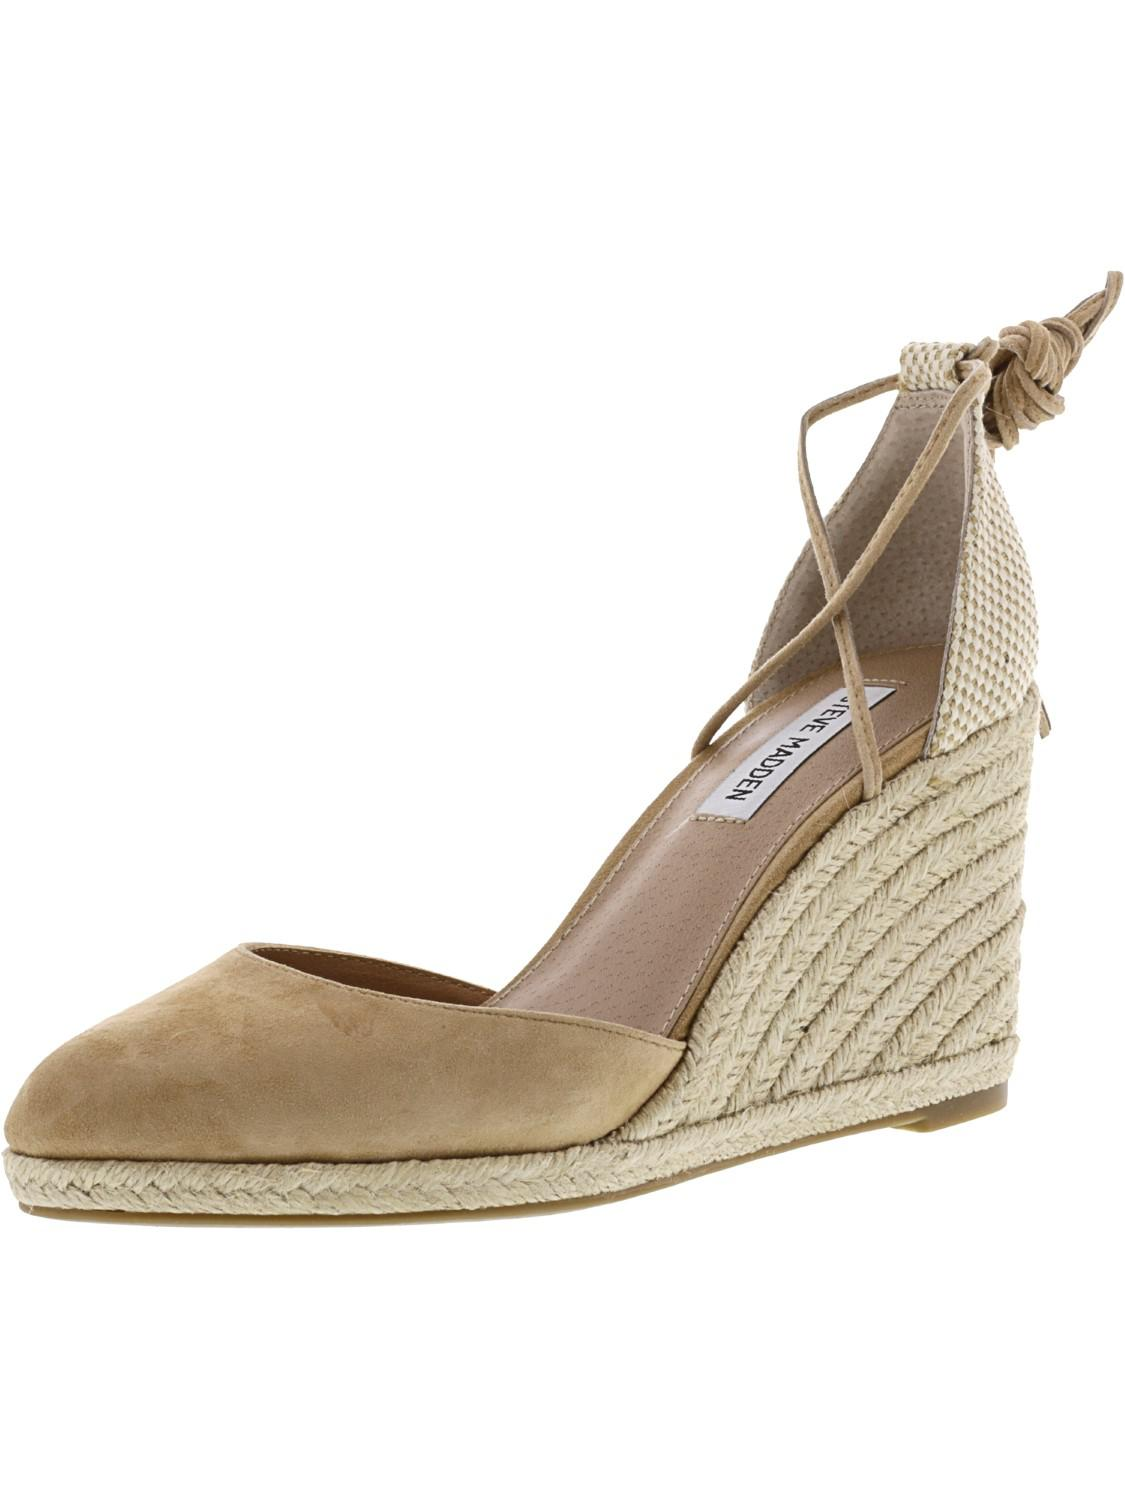 2287f699188 Lyst - Steve Madden Bestow Suede Wedged Sandal - 8.5m in Natural